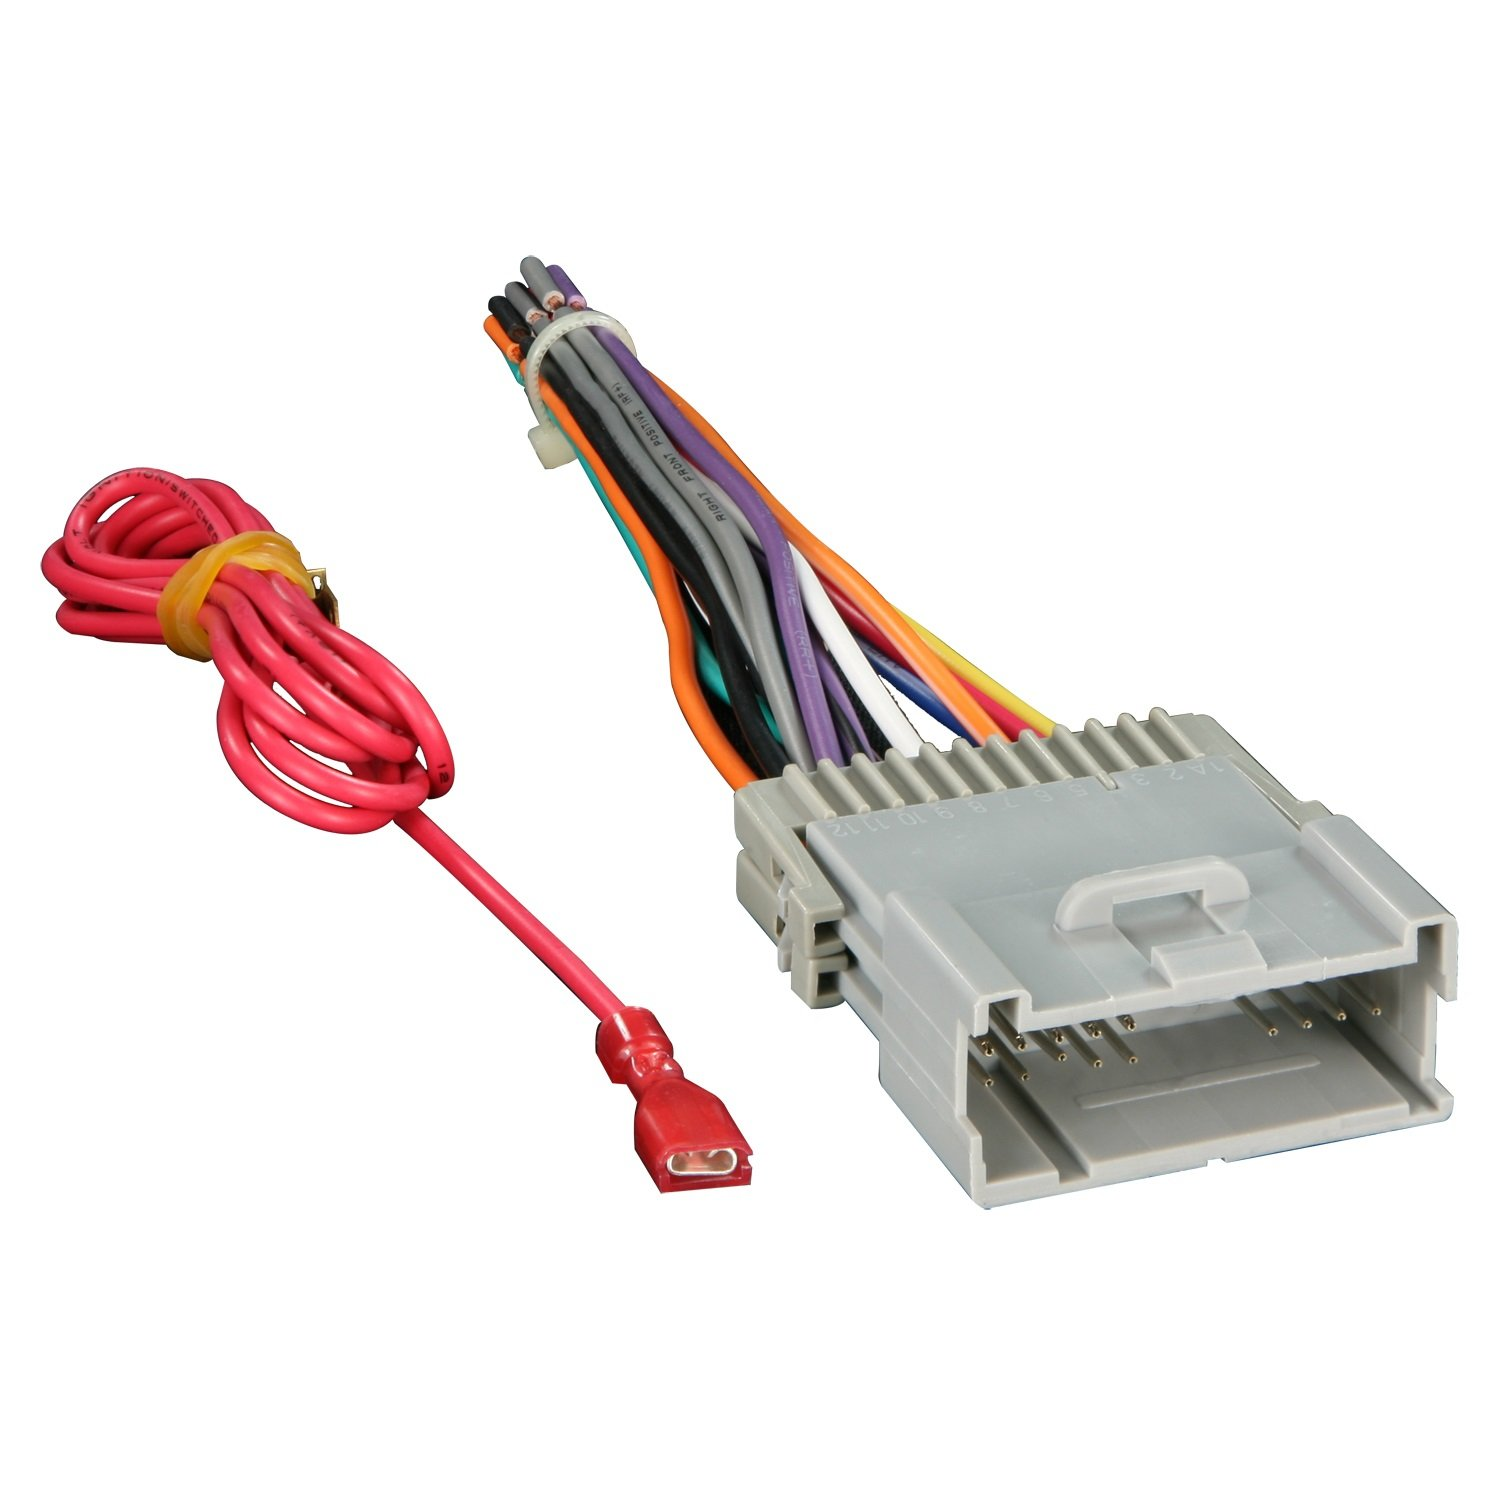 61eewxp9orL._SL1500_ amazon com metra 70 2003 radio wiring harness for gm 98 08 GM Wiring Color Codes at crackthecode.co